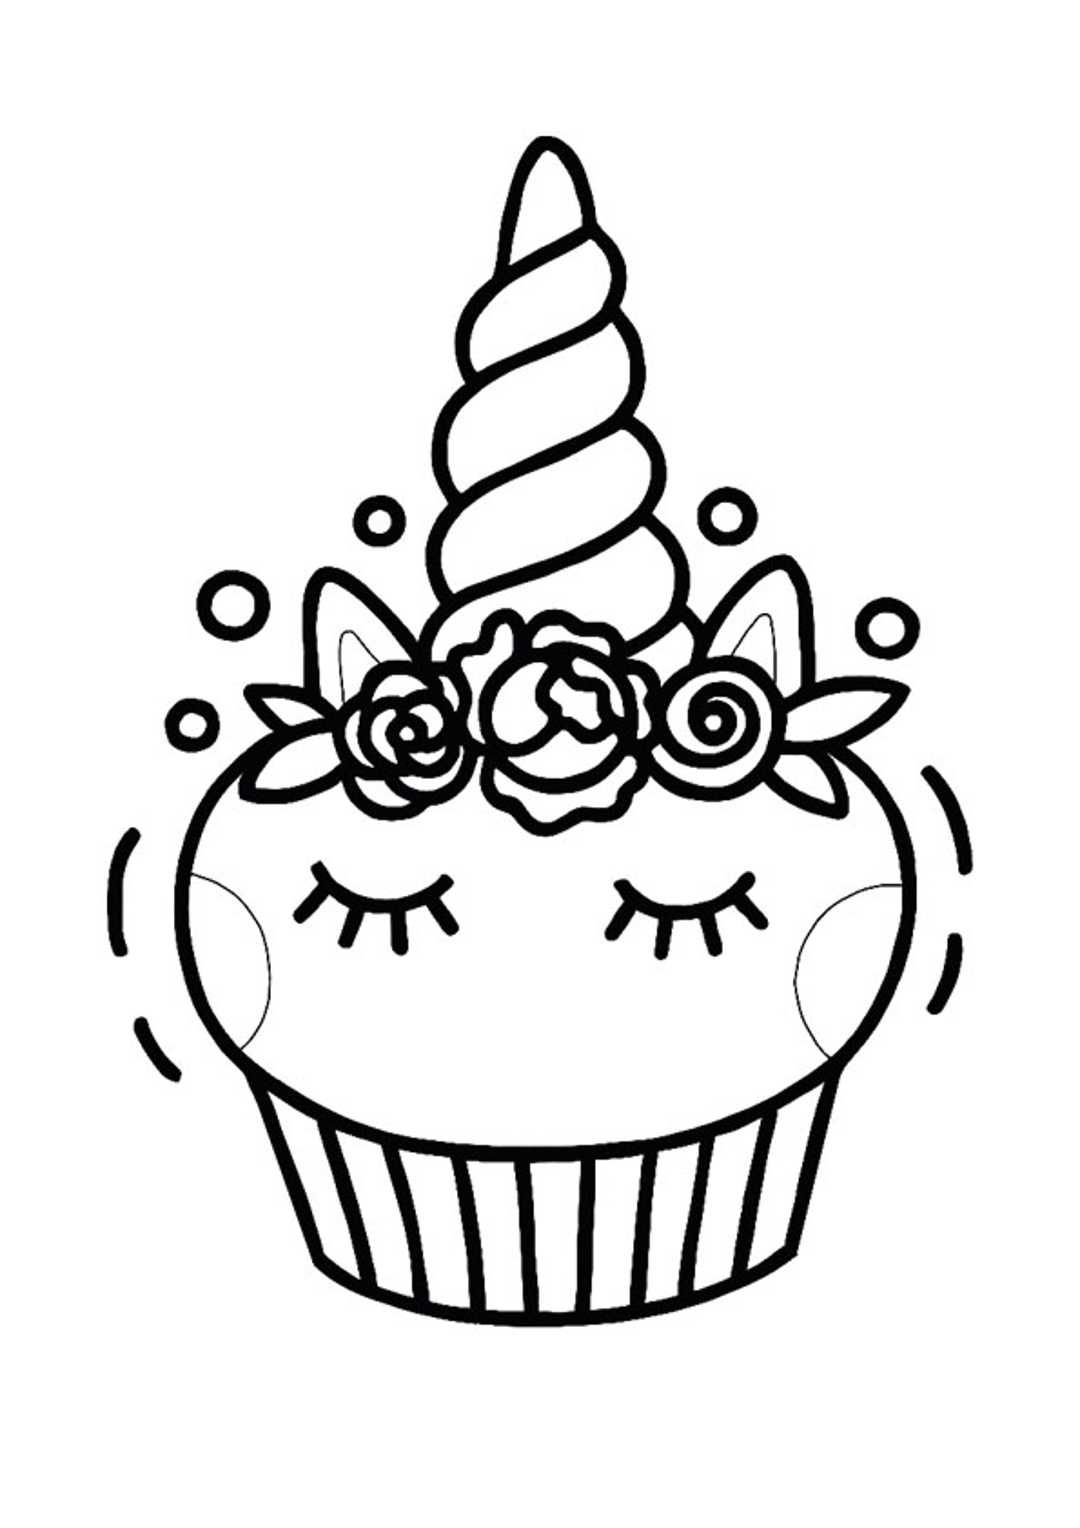 Free Printable Unicorn Cupcake Coloring Pages